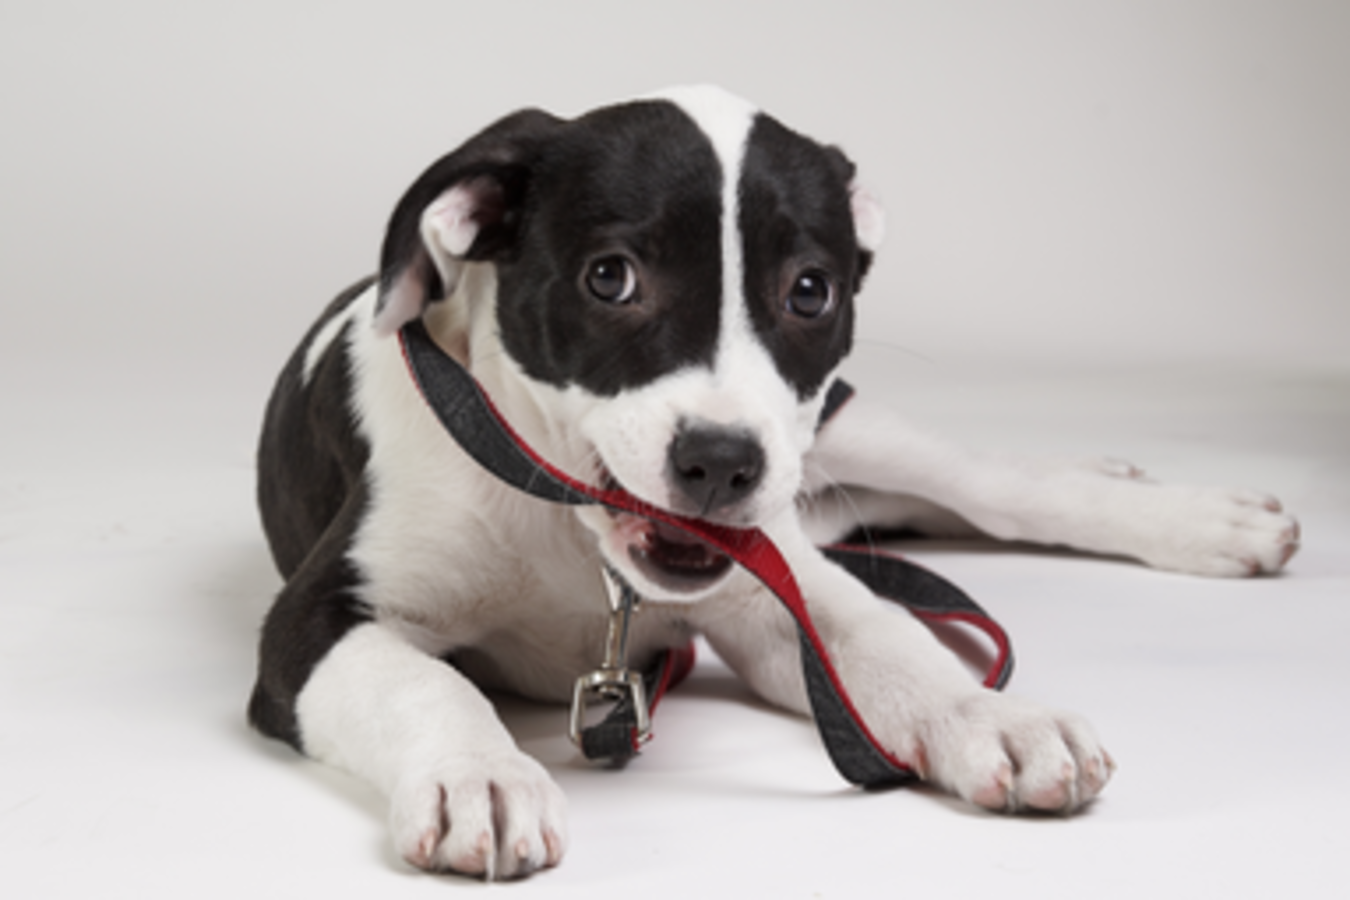 Can Your Dog's DNA Transform Human Health and Aging? | SXSW